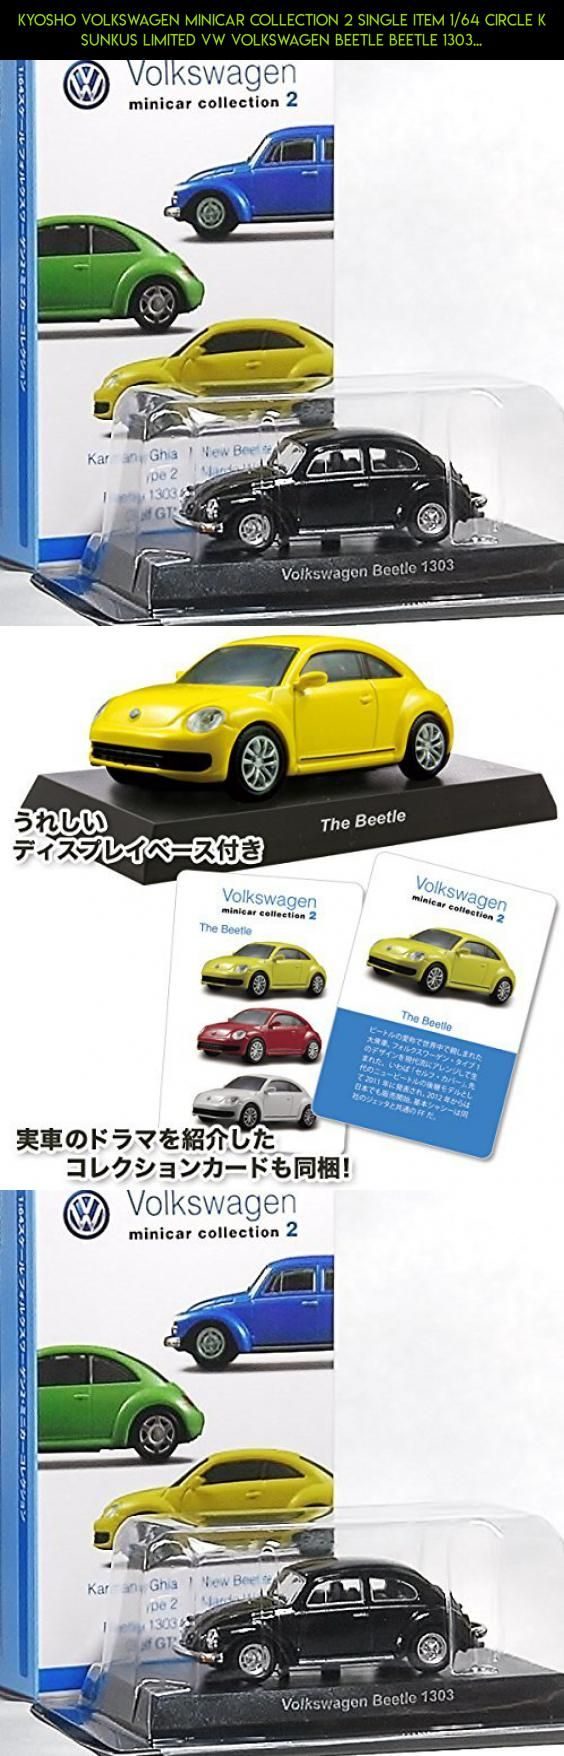 Kyosho Volkswagen minicar collection 2 single item 1/64 Circle K Sunkus limited VW Volkswagen Beetle Beetle 1303 Black #technology #shopping #fpv #plans #1 #products #tech #parts #camera #64 #gadgets #racing #drone #kyosho #kit